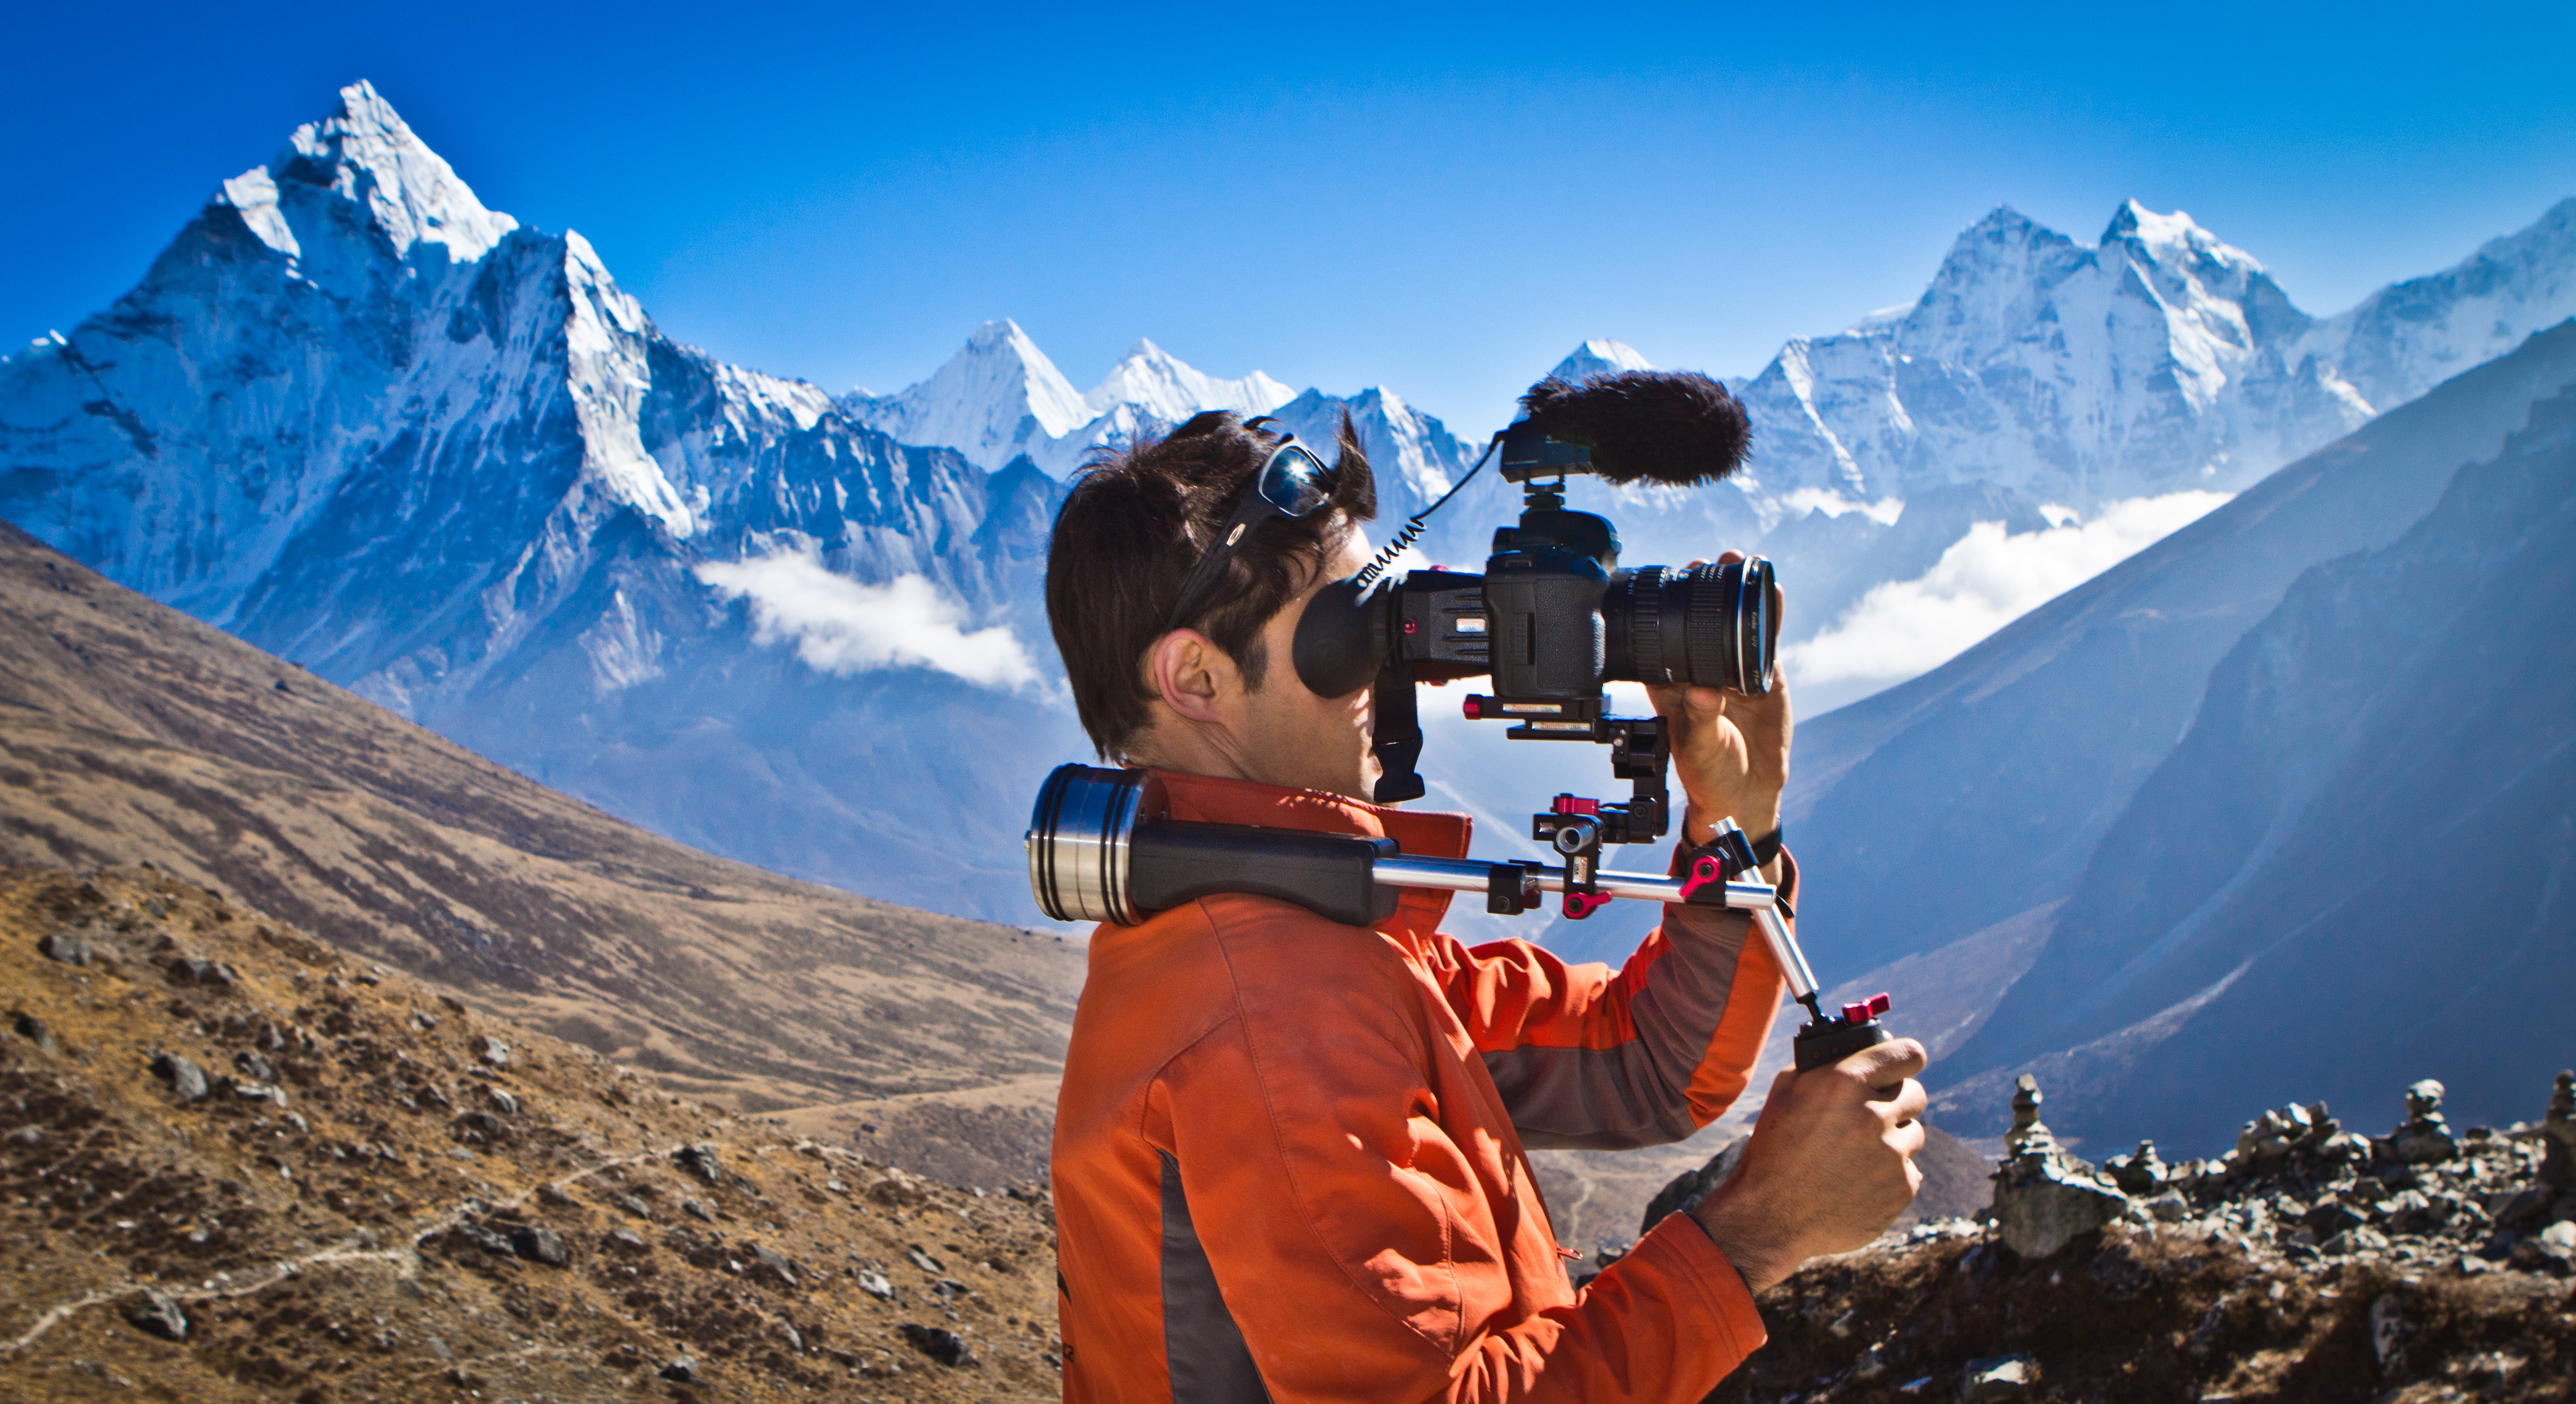 Zacto-and-Elia-in-the-Himalayas[1]